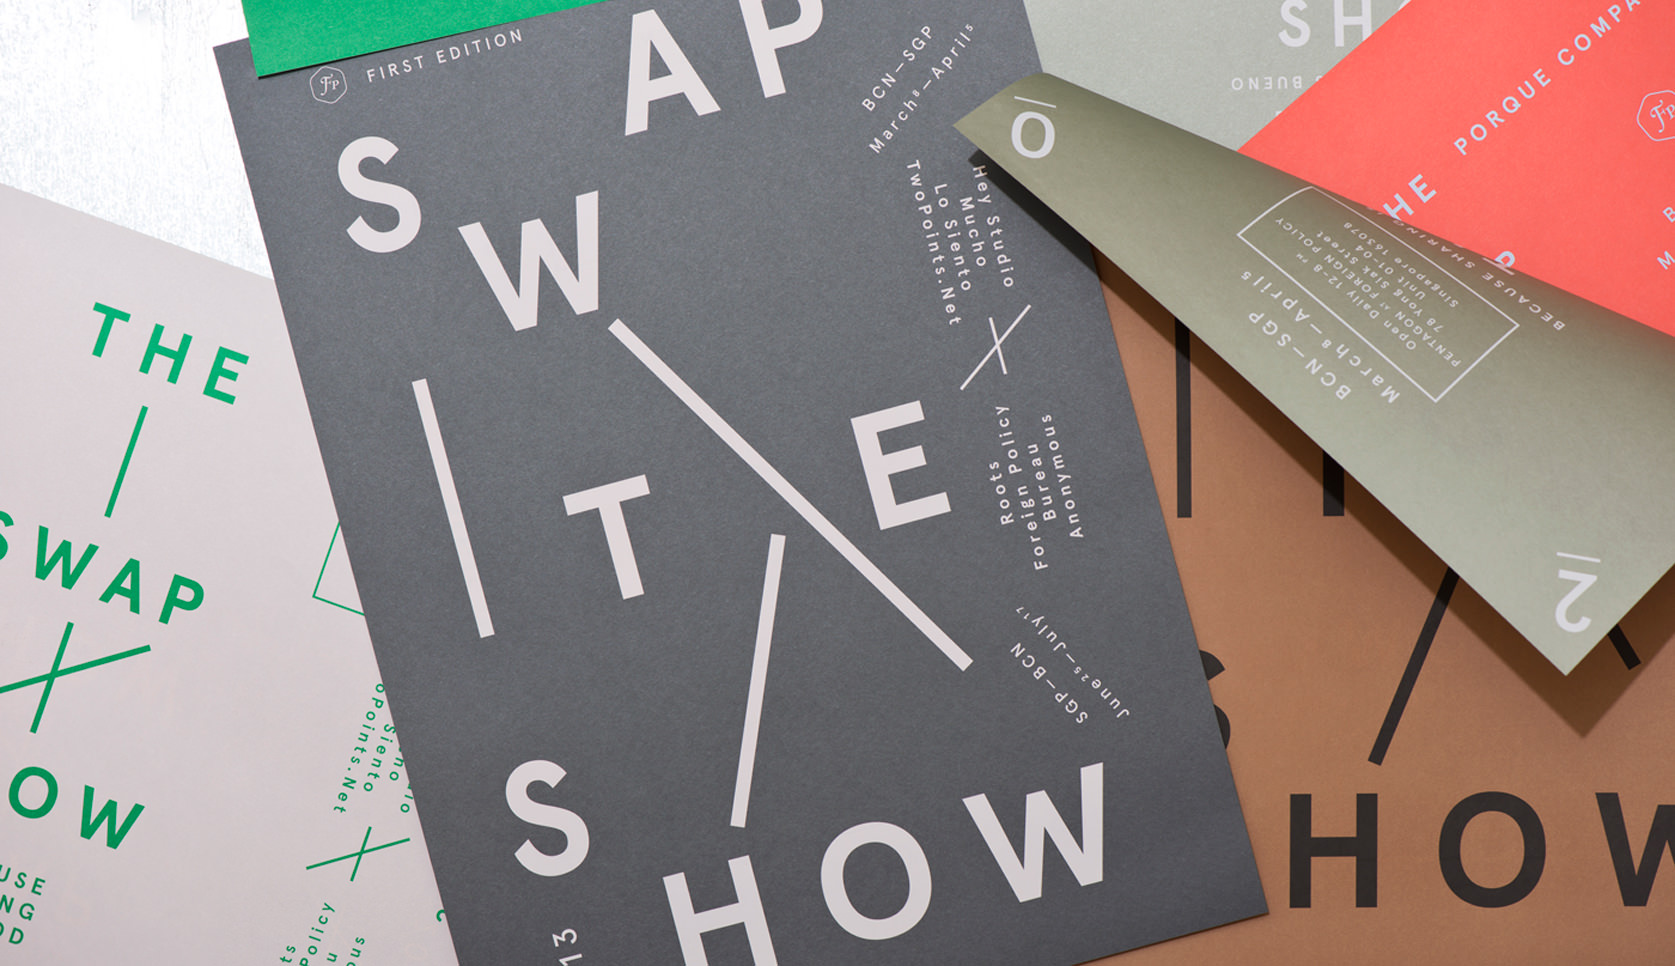 The Swap Show - Foreign Policy